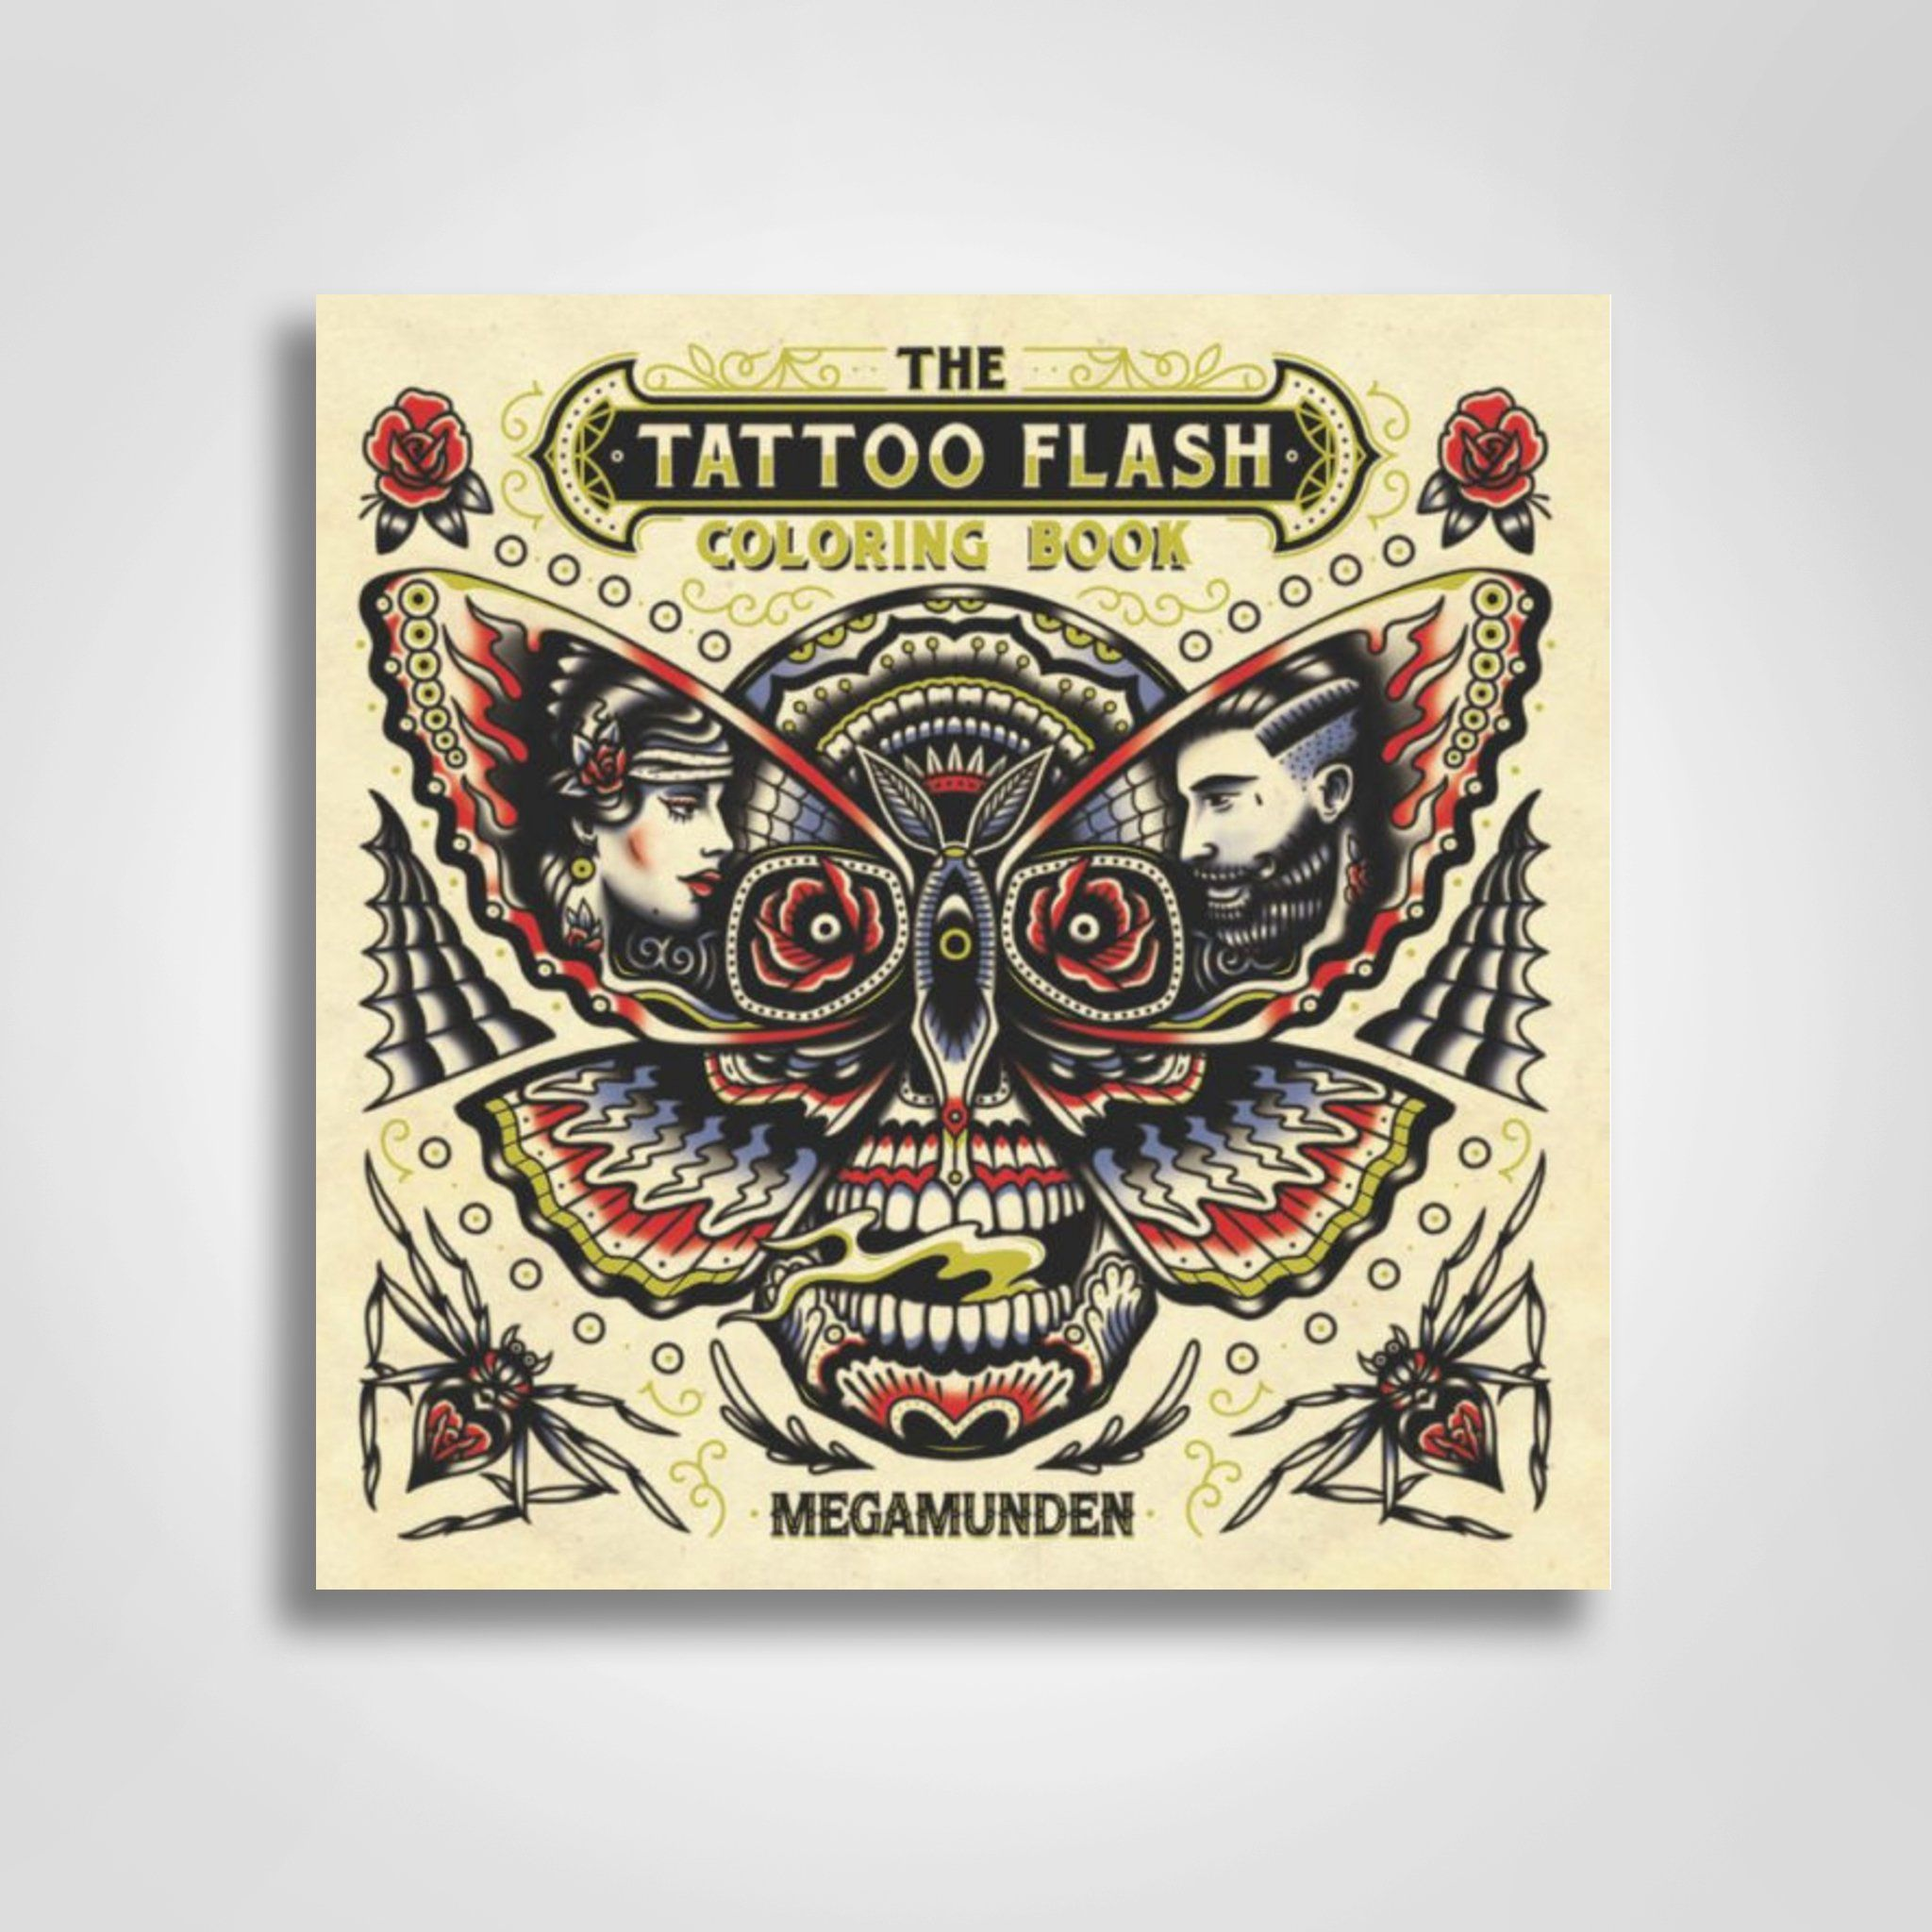 The Tattoo Flash Coloring Book Tattoo Coloring Book Coloring Books Flash Tattoo